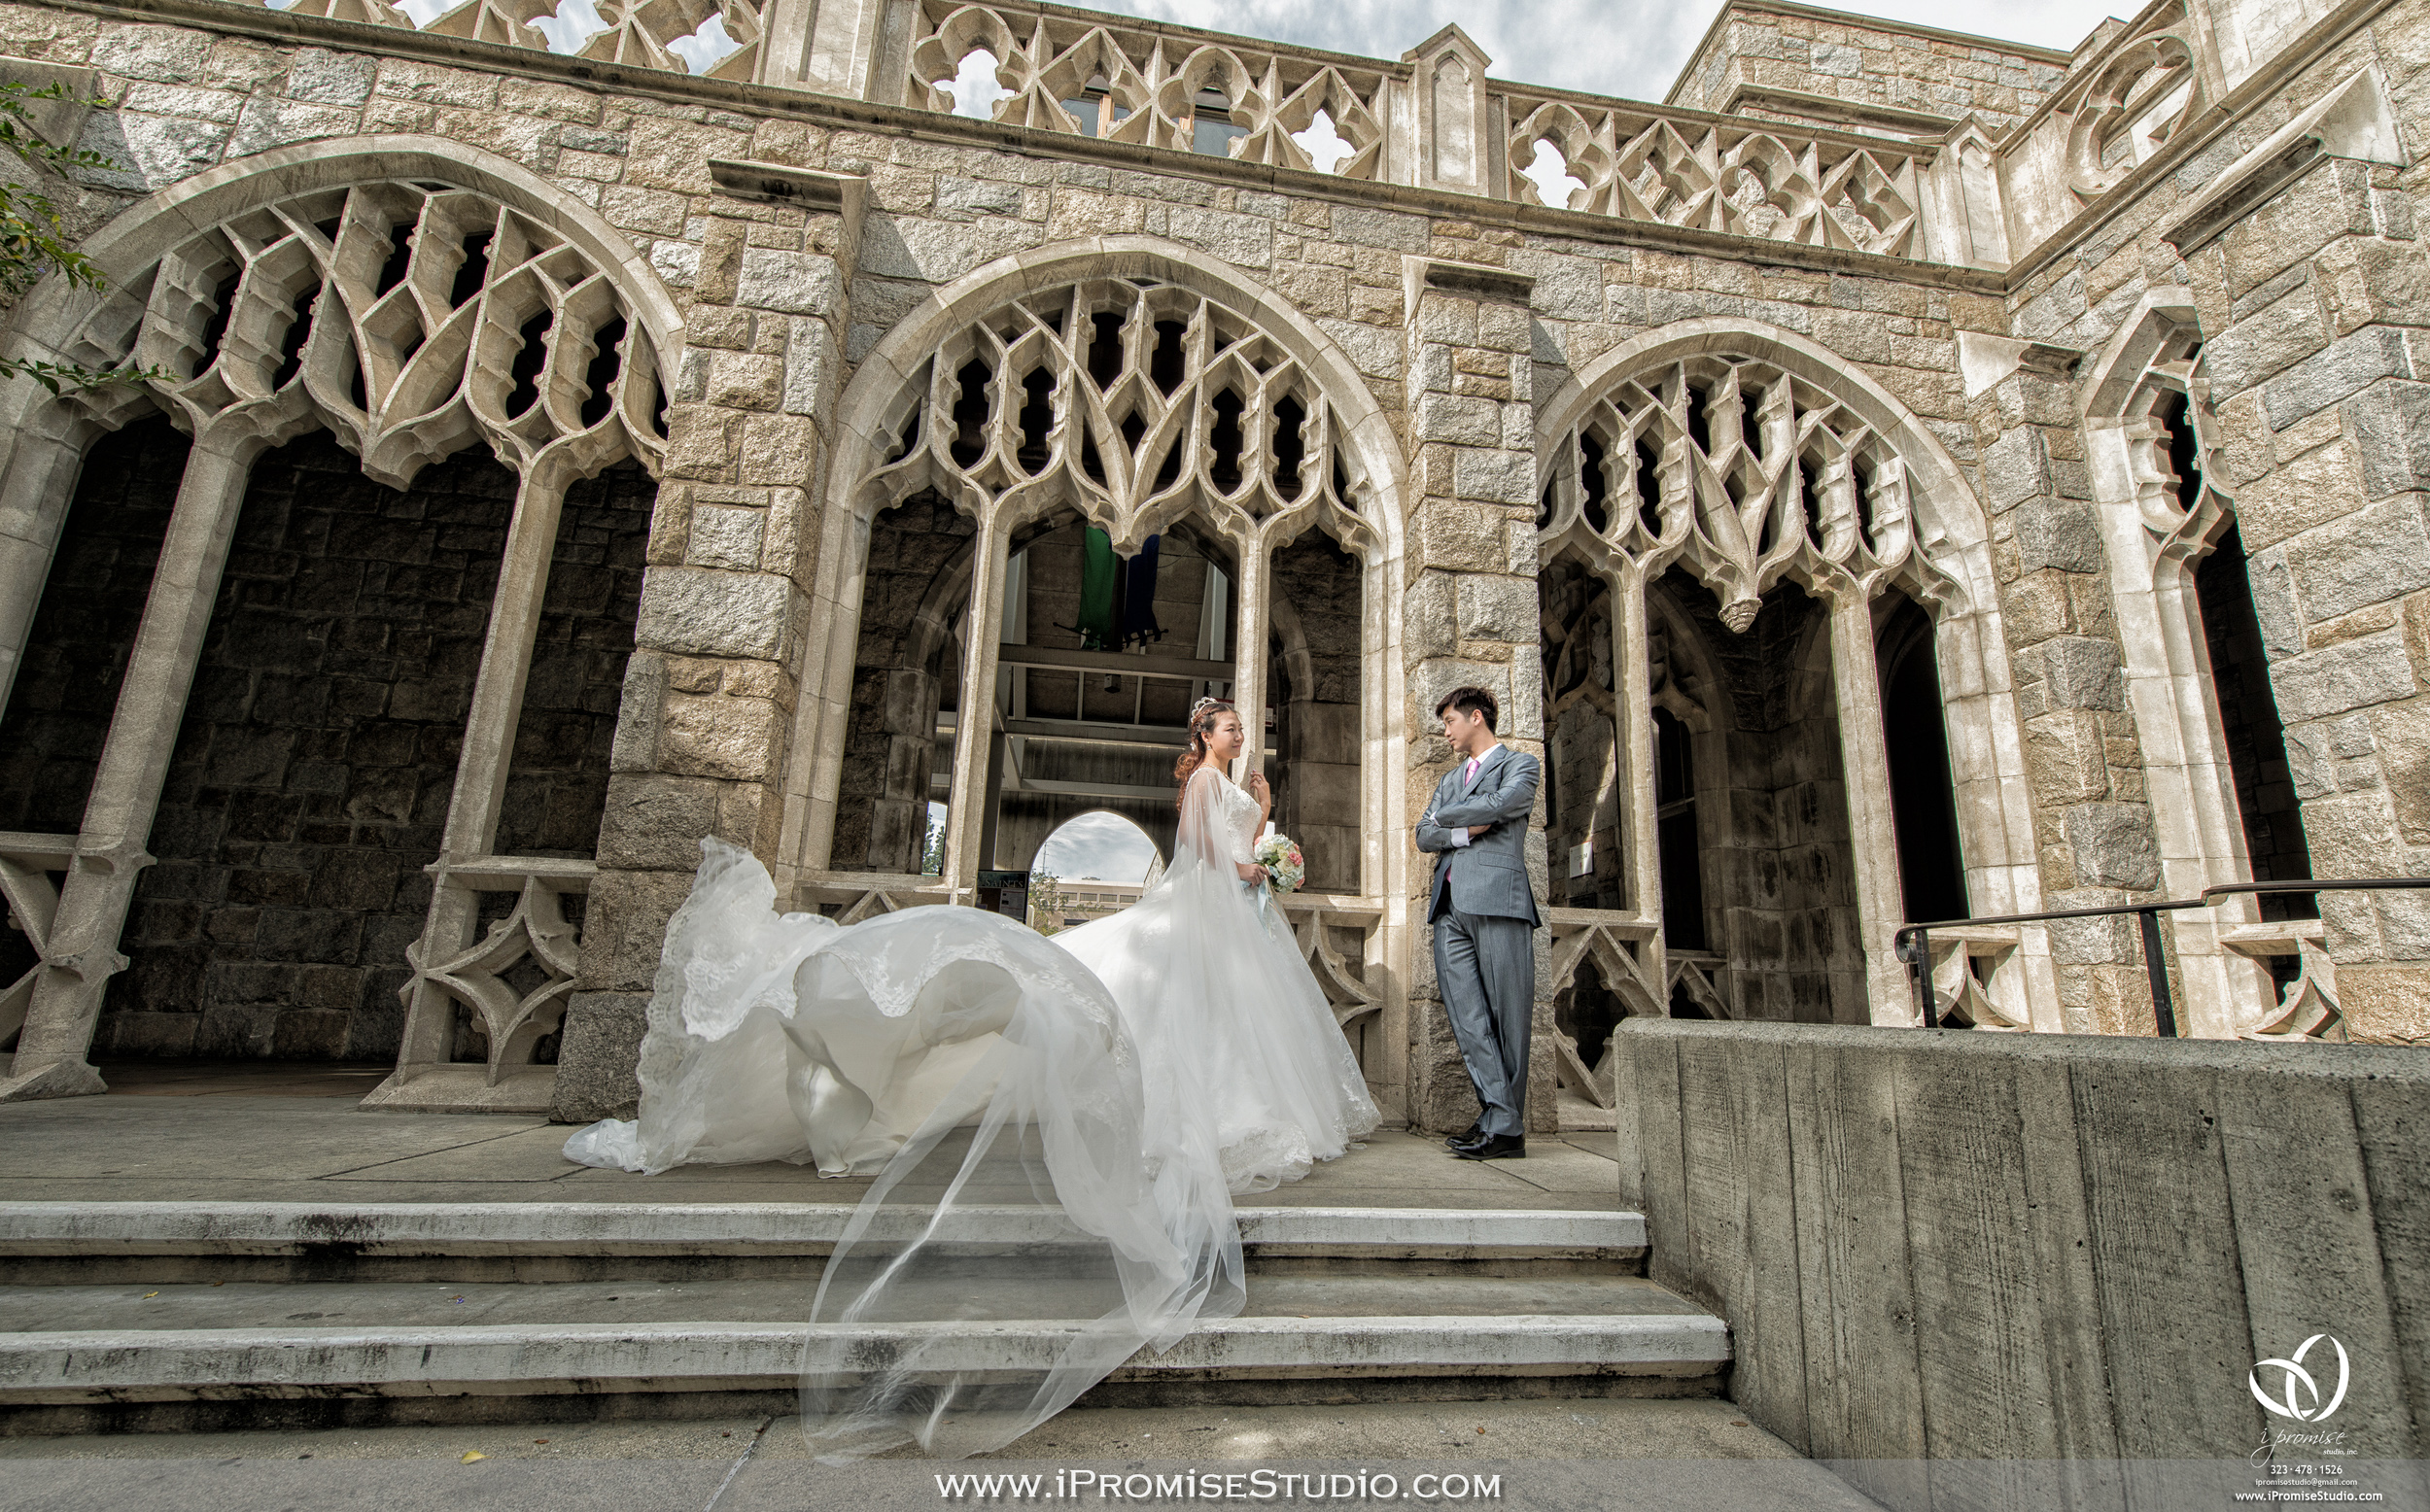 Pasadena_Church_engagement_wedding_02.JPG